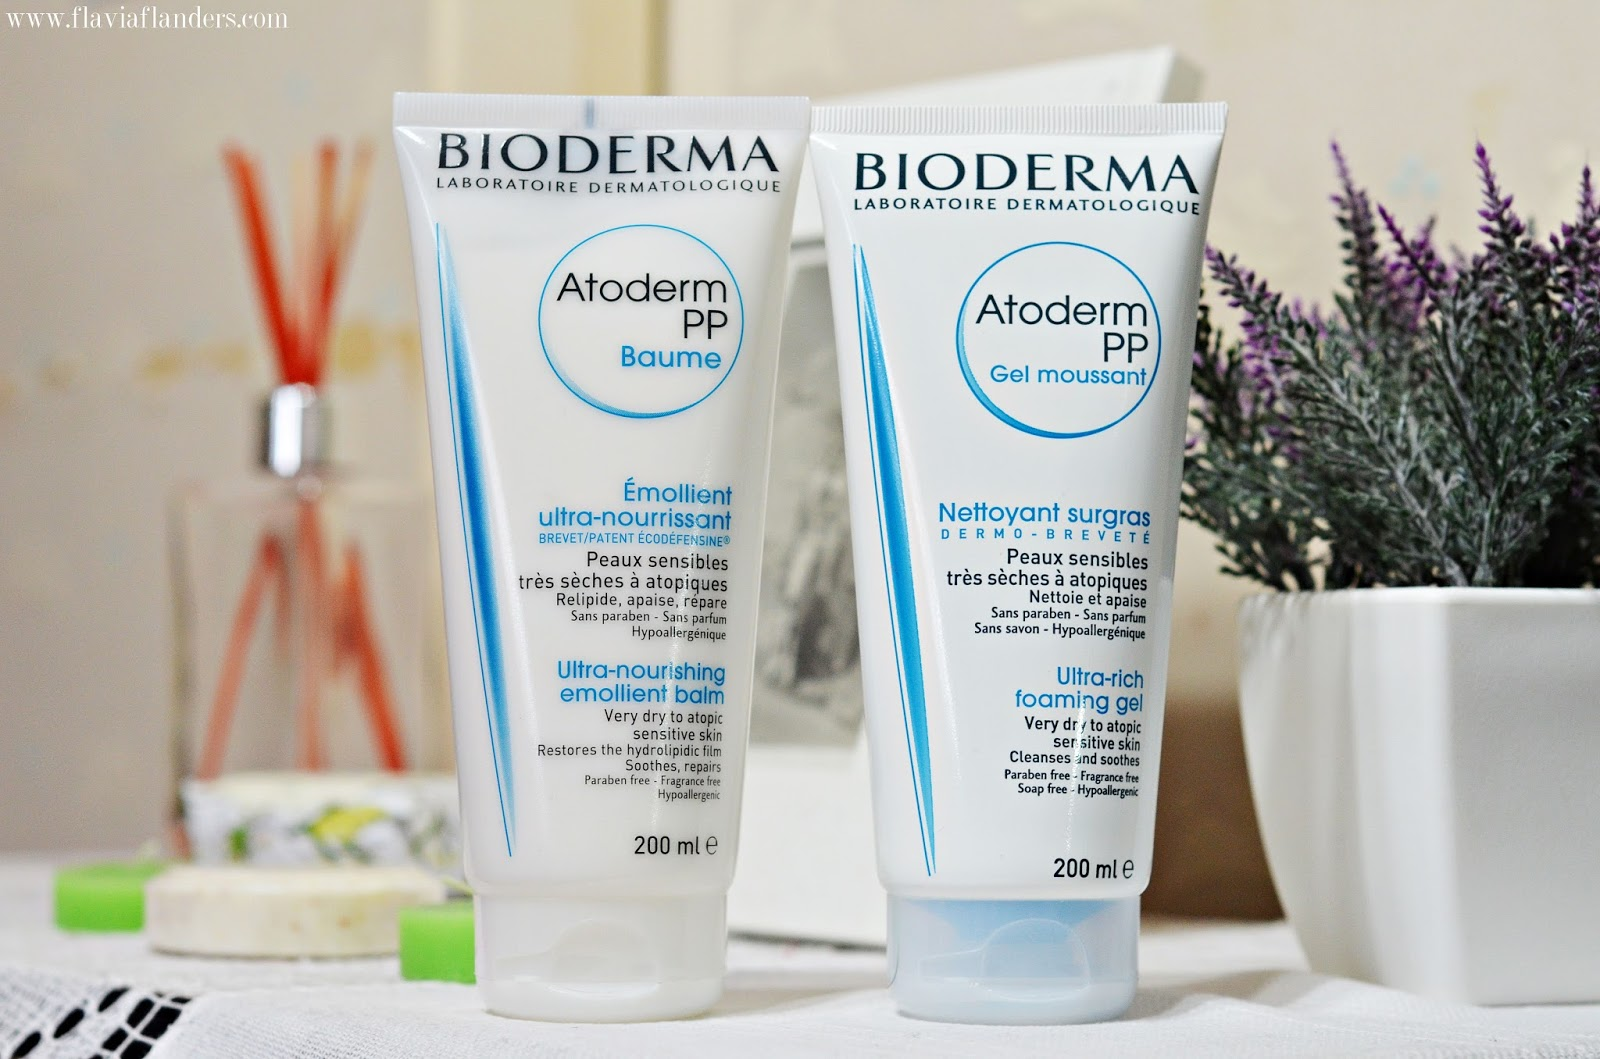 Bioderma, Atoderm, Atoderm PP, Bioderma Atoderm, Bioderma Atoderm PP, Atoderm PP Baume, Atoderm PP Gel Moussant, Bioderma Atoderm Gel Limpiador, beauty, beauty blogger, beauty blogger argentina, beauty guru, beauty guru argentina, flavia flanders, you can call me flanders, bioderma argentina